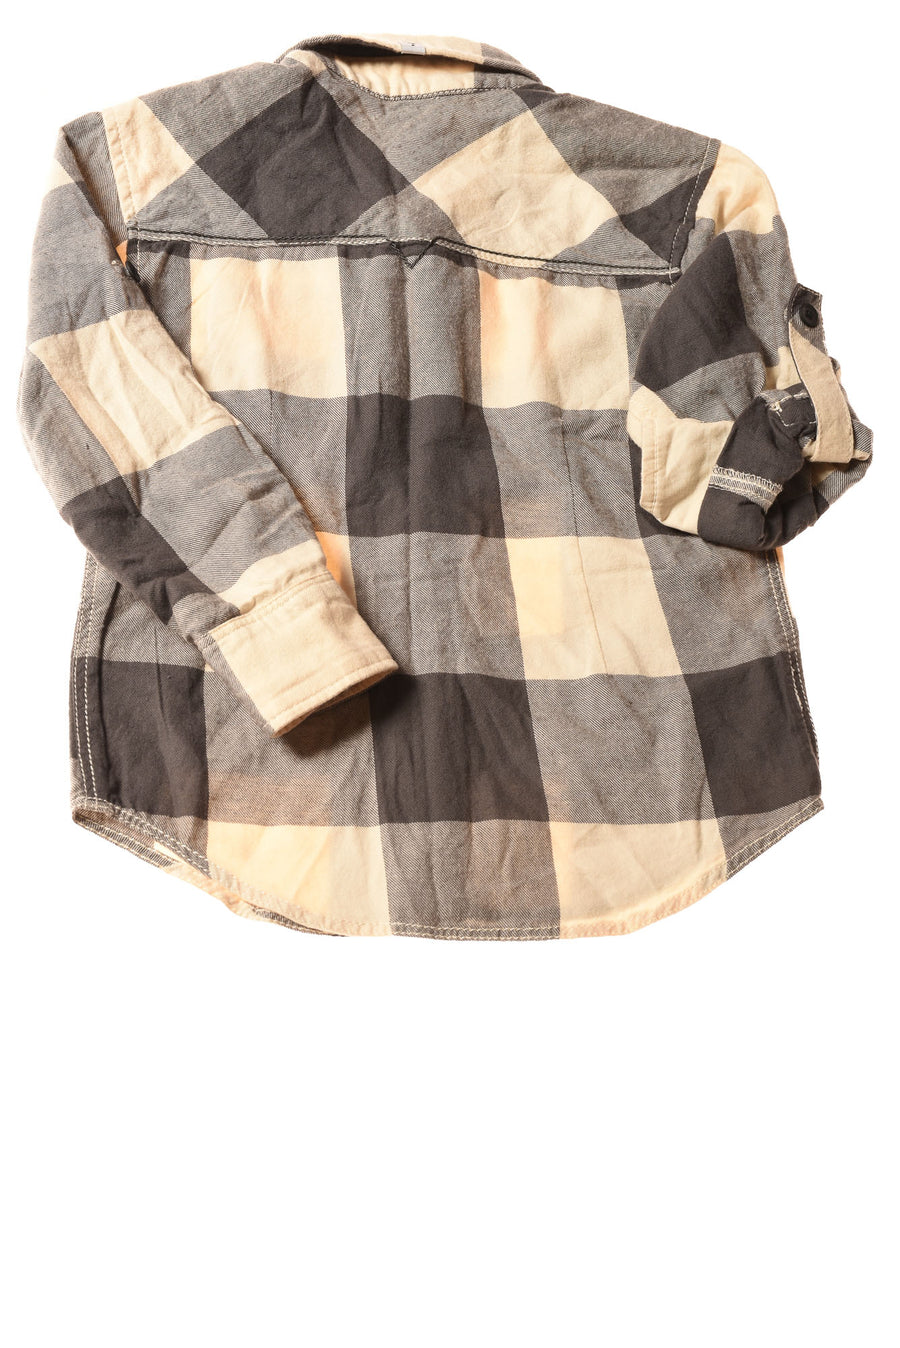 USED Guess Toddler Boy's Shirt 4 Ivory & Gray / Plaid